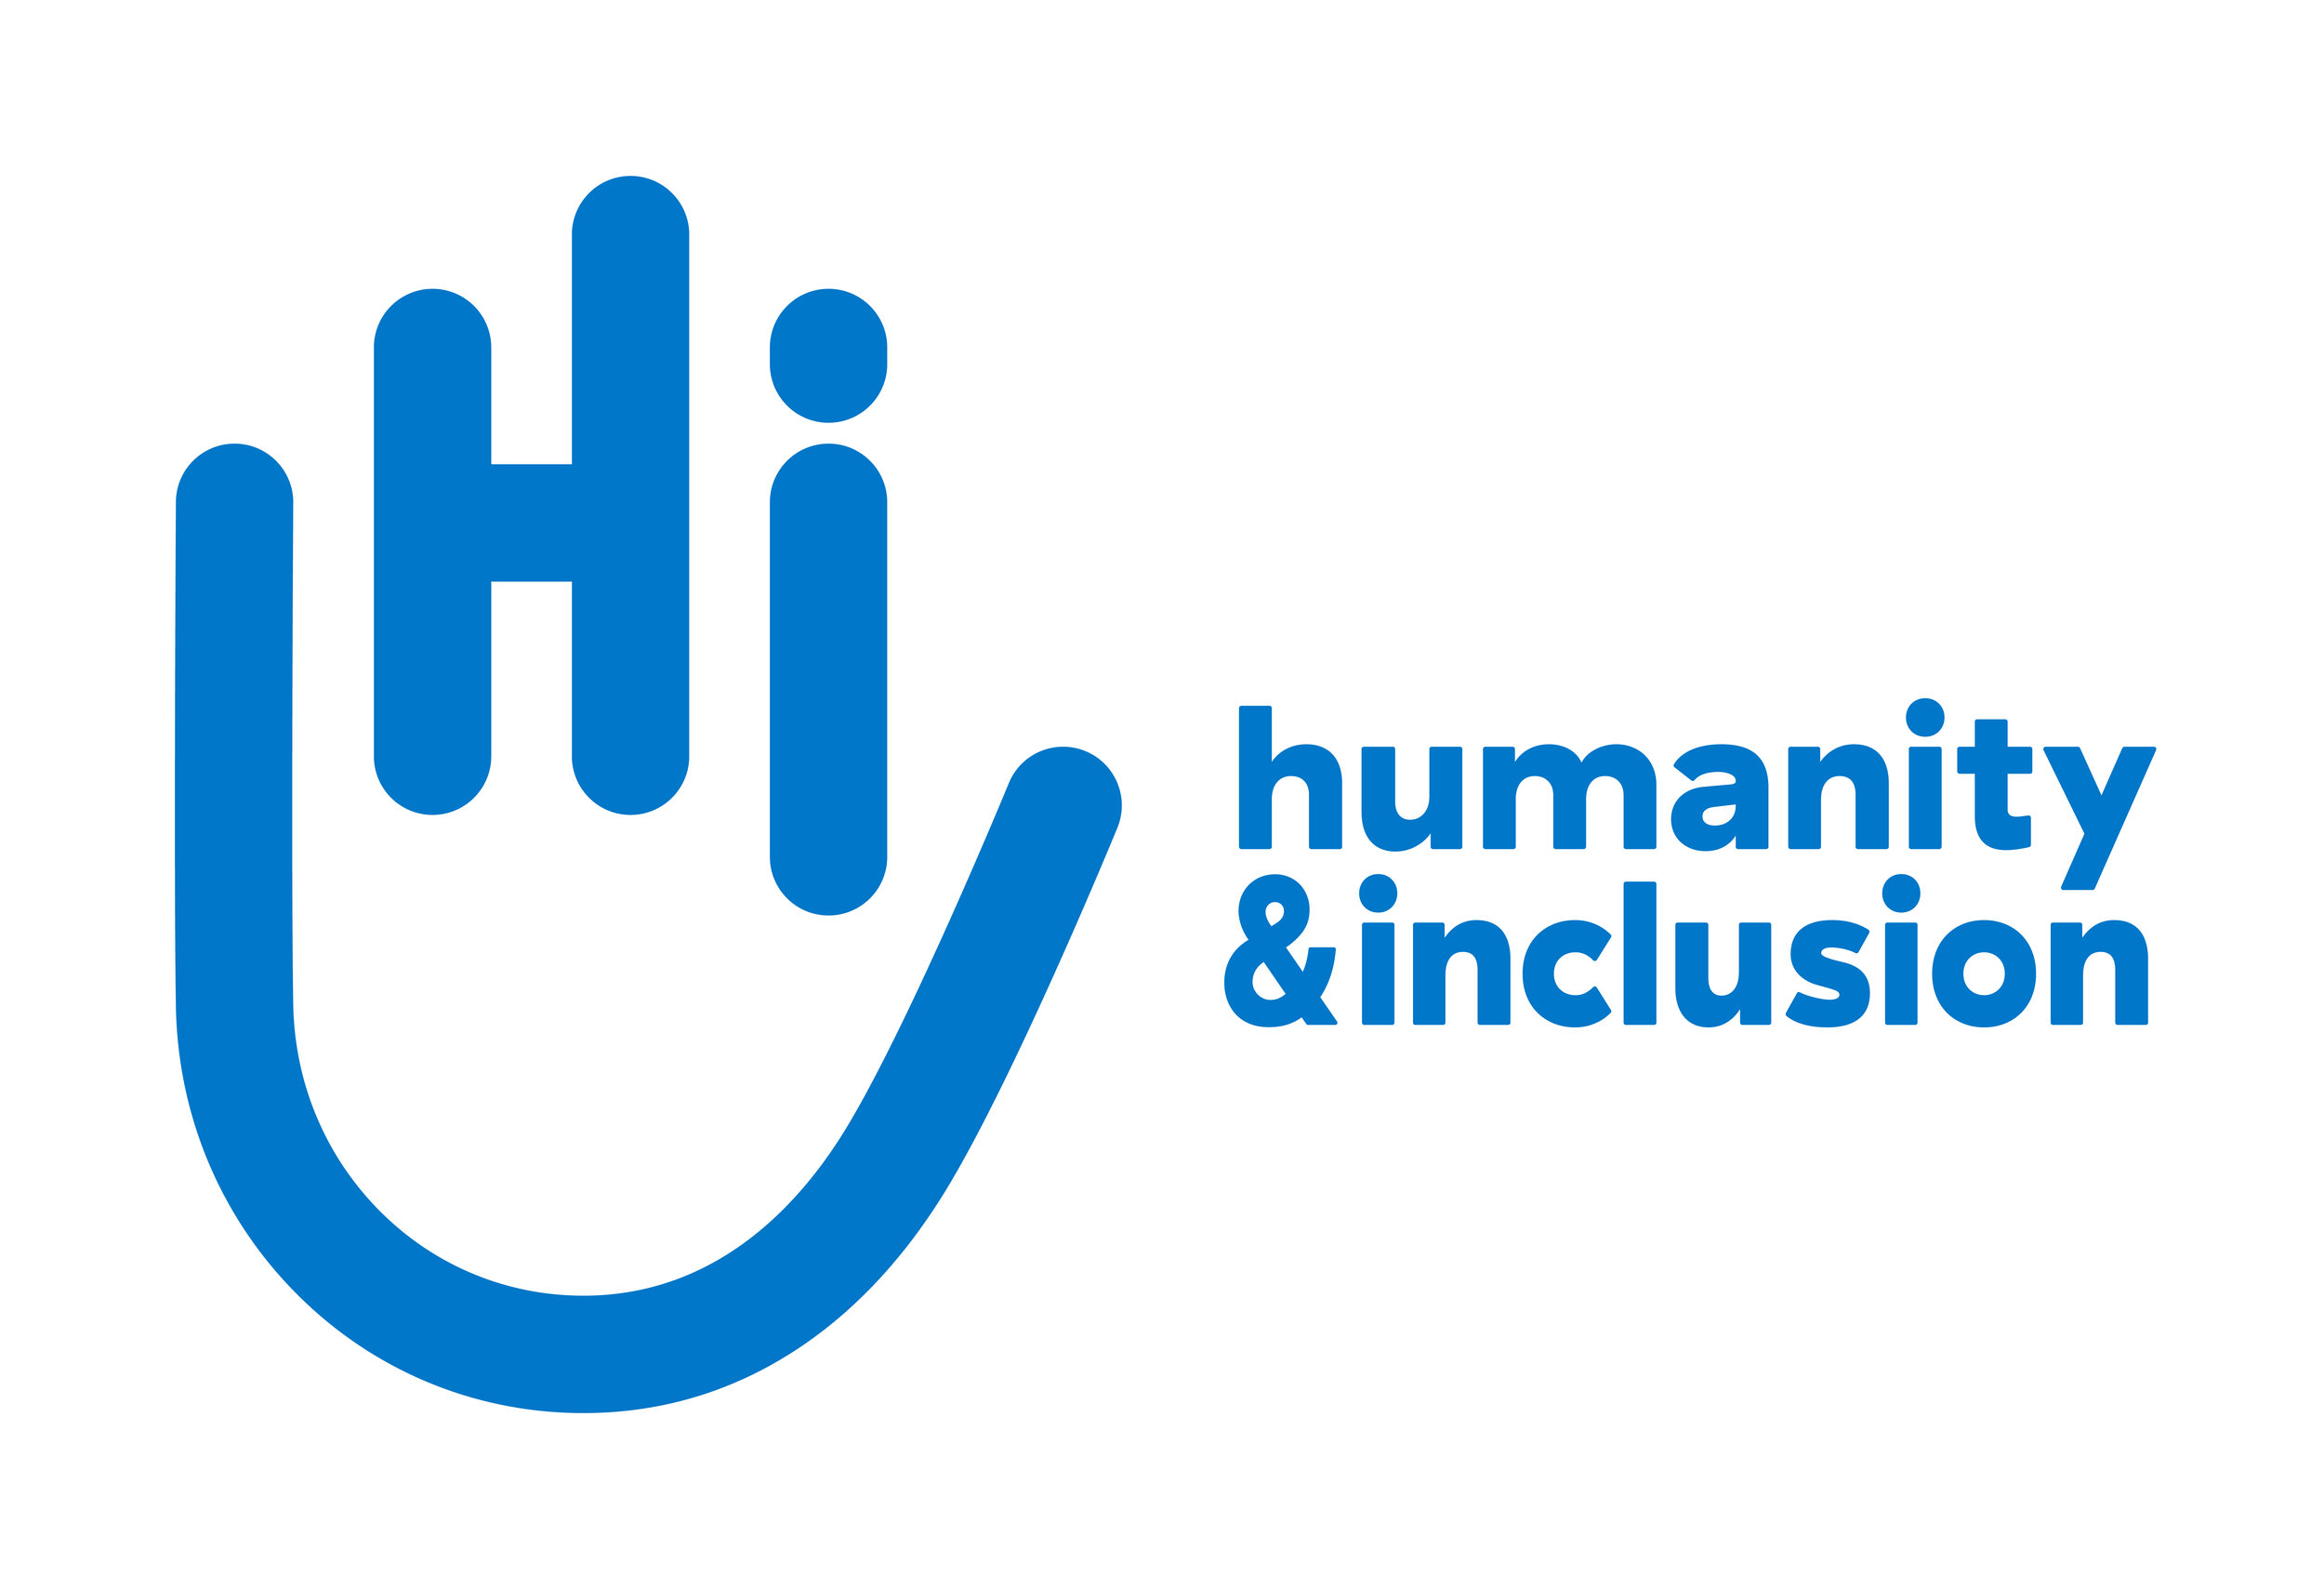 Copy of Copy of Humanity and inclusion